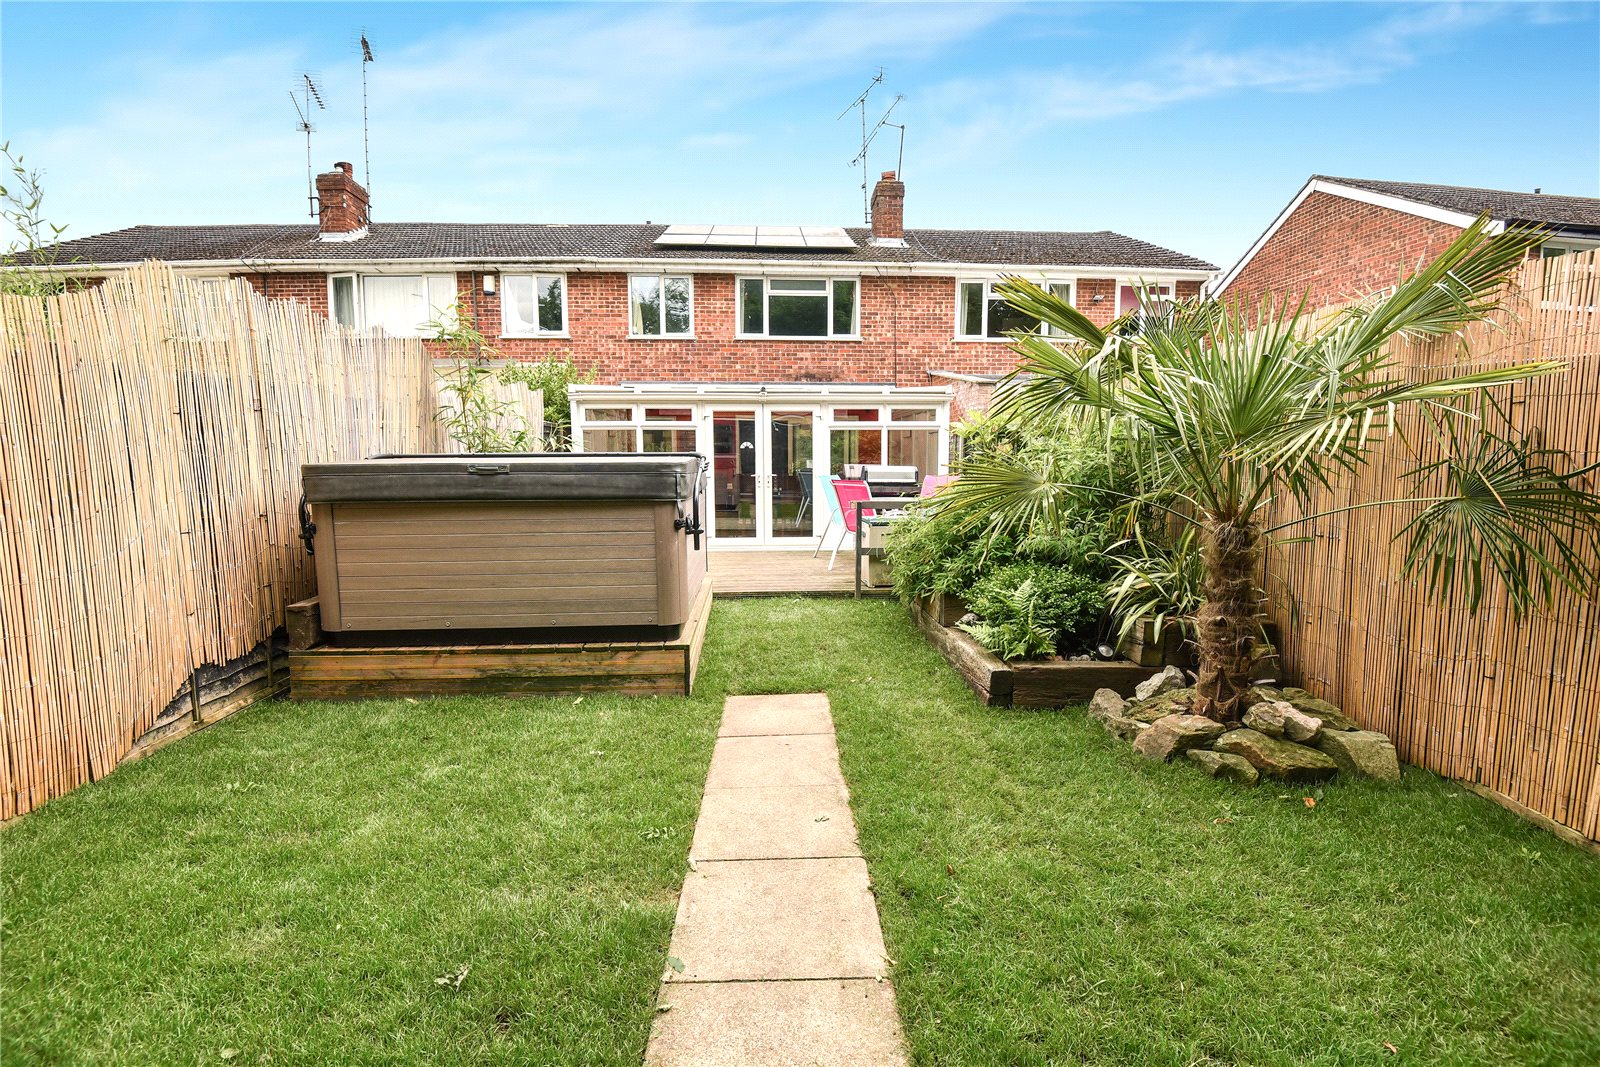 3 Bedrooms House for sale in Beaulieu Gardens, Blackwater, Camberley, GU17